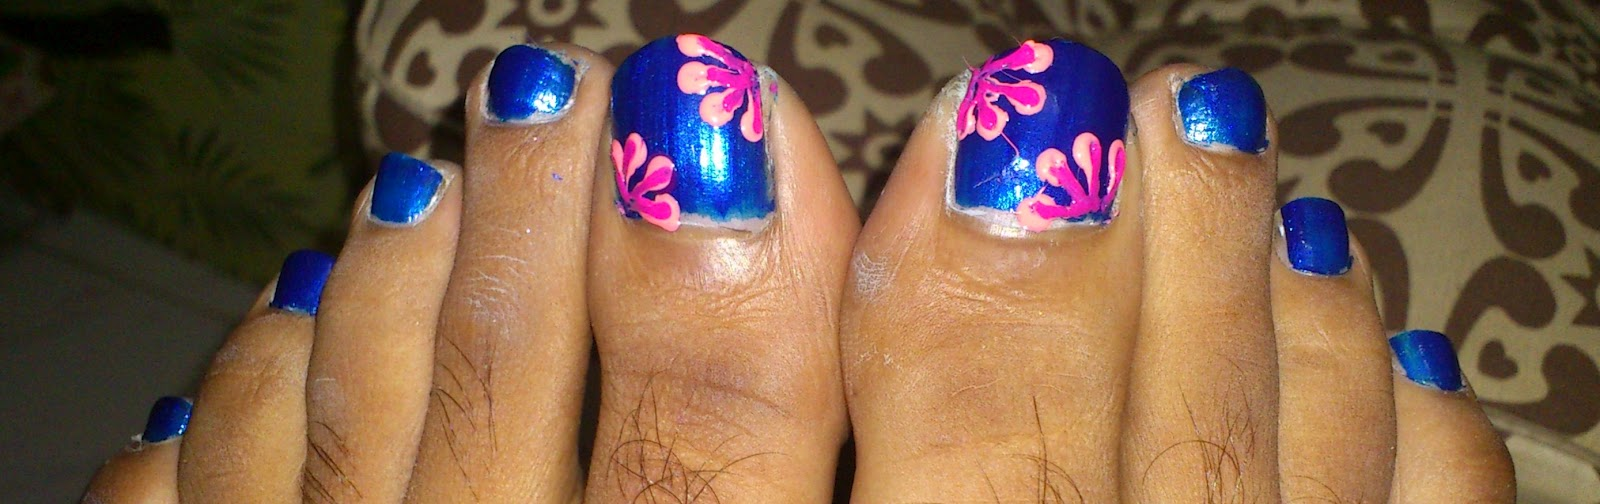 Cool Toe Nail Polish Designs